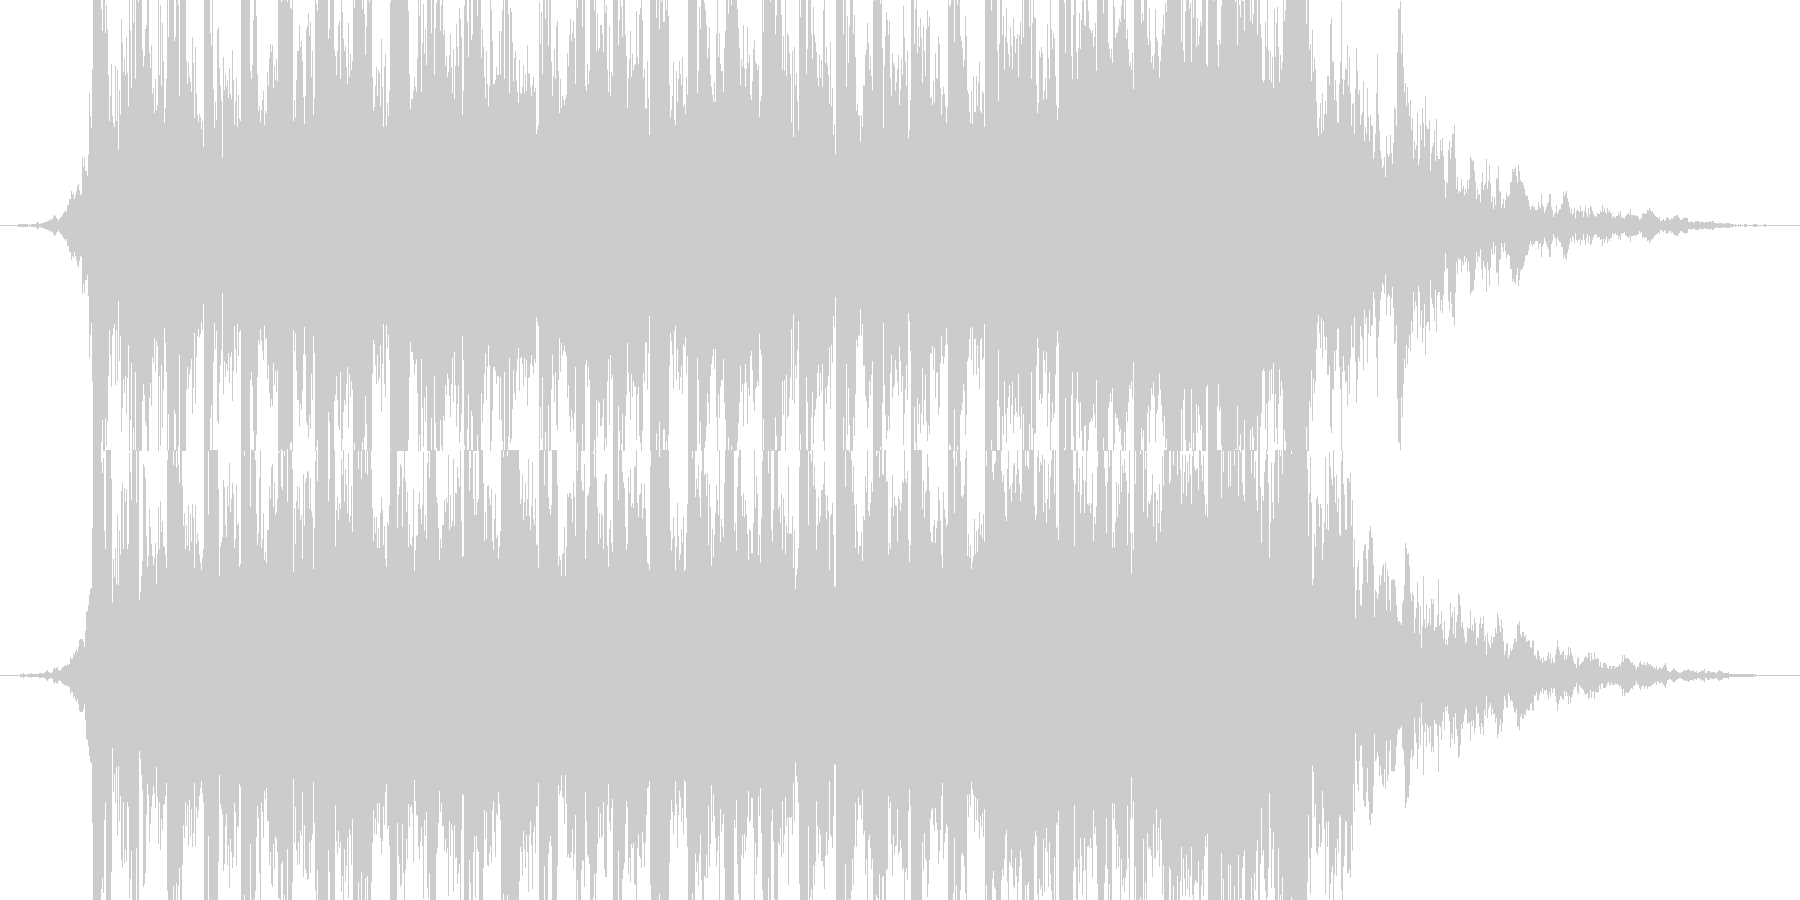 Exciting opening and appearance's unreproduced waveform